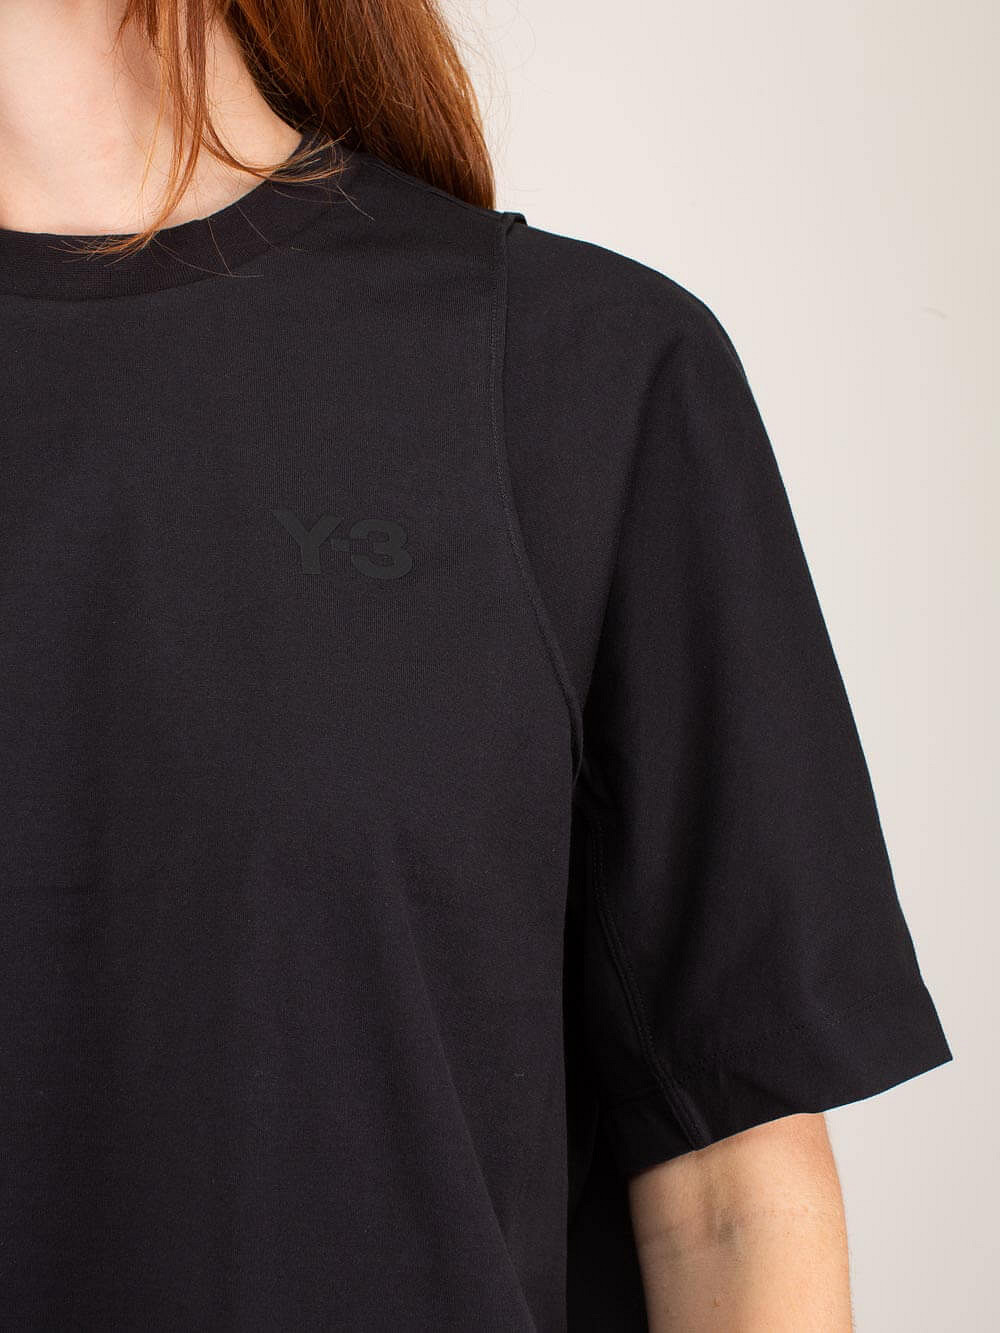 W CL TLR SS Tee black